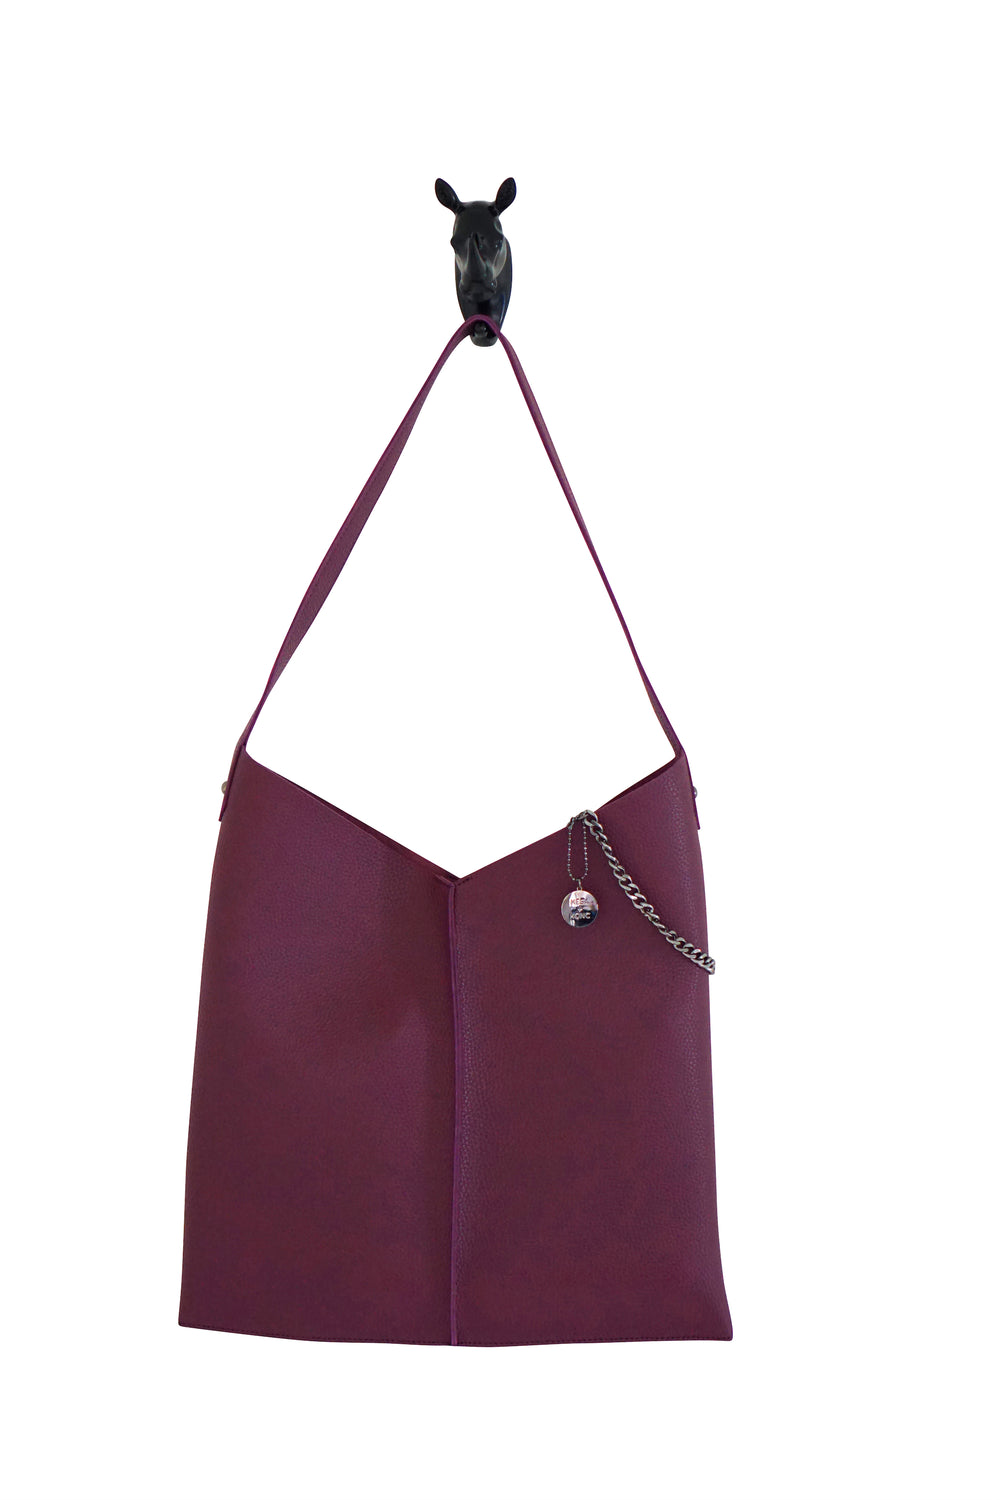 Kesa + Konc Vegan Leather Plum Tote Bag